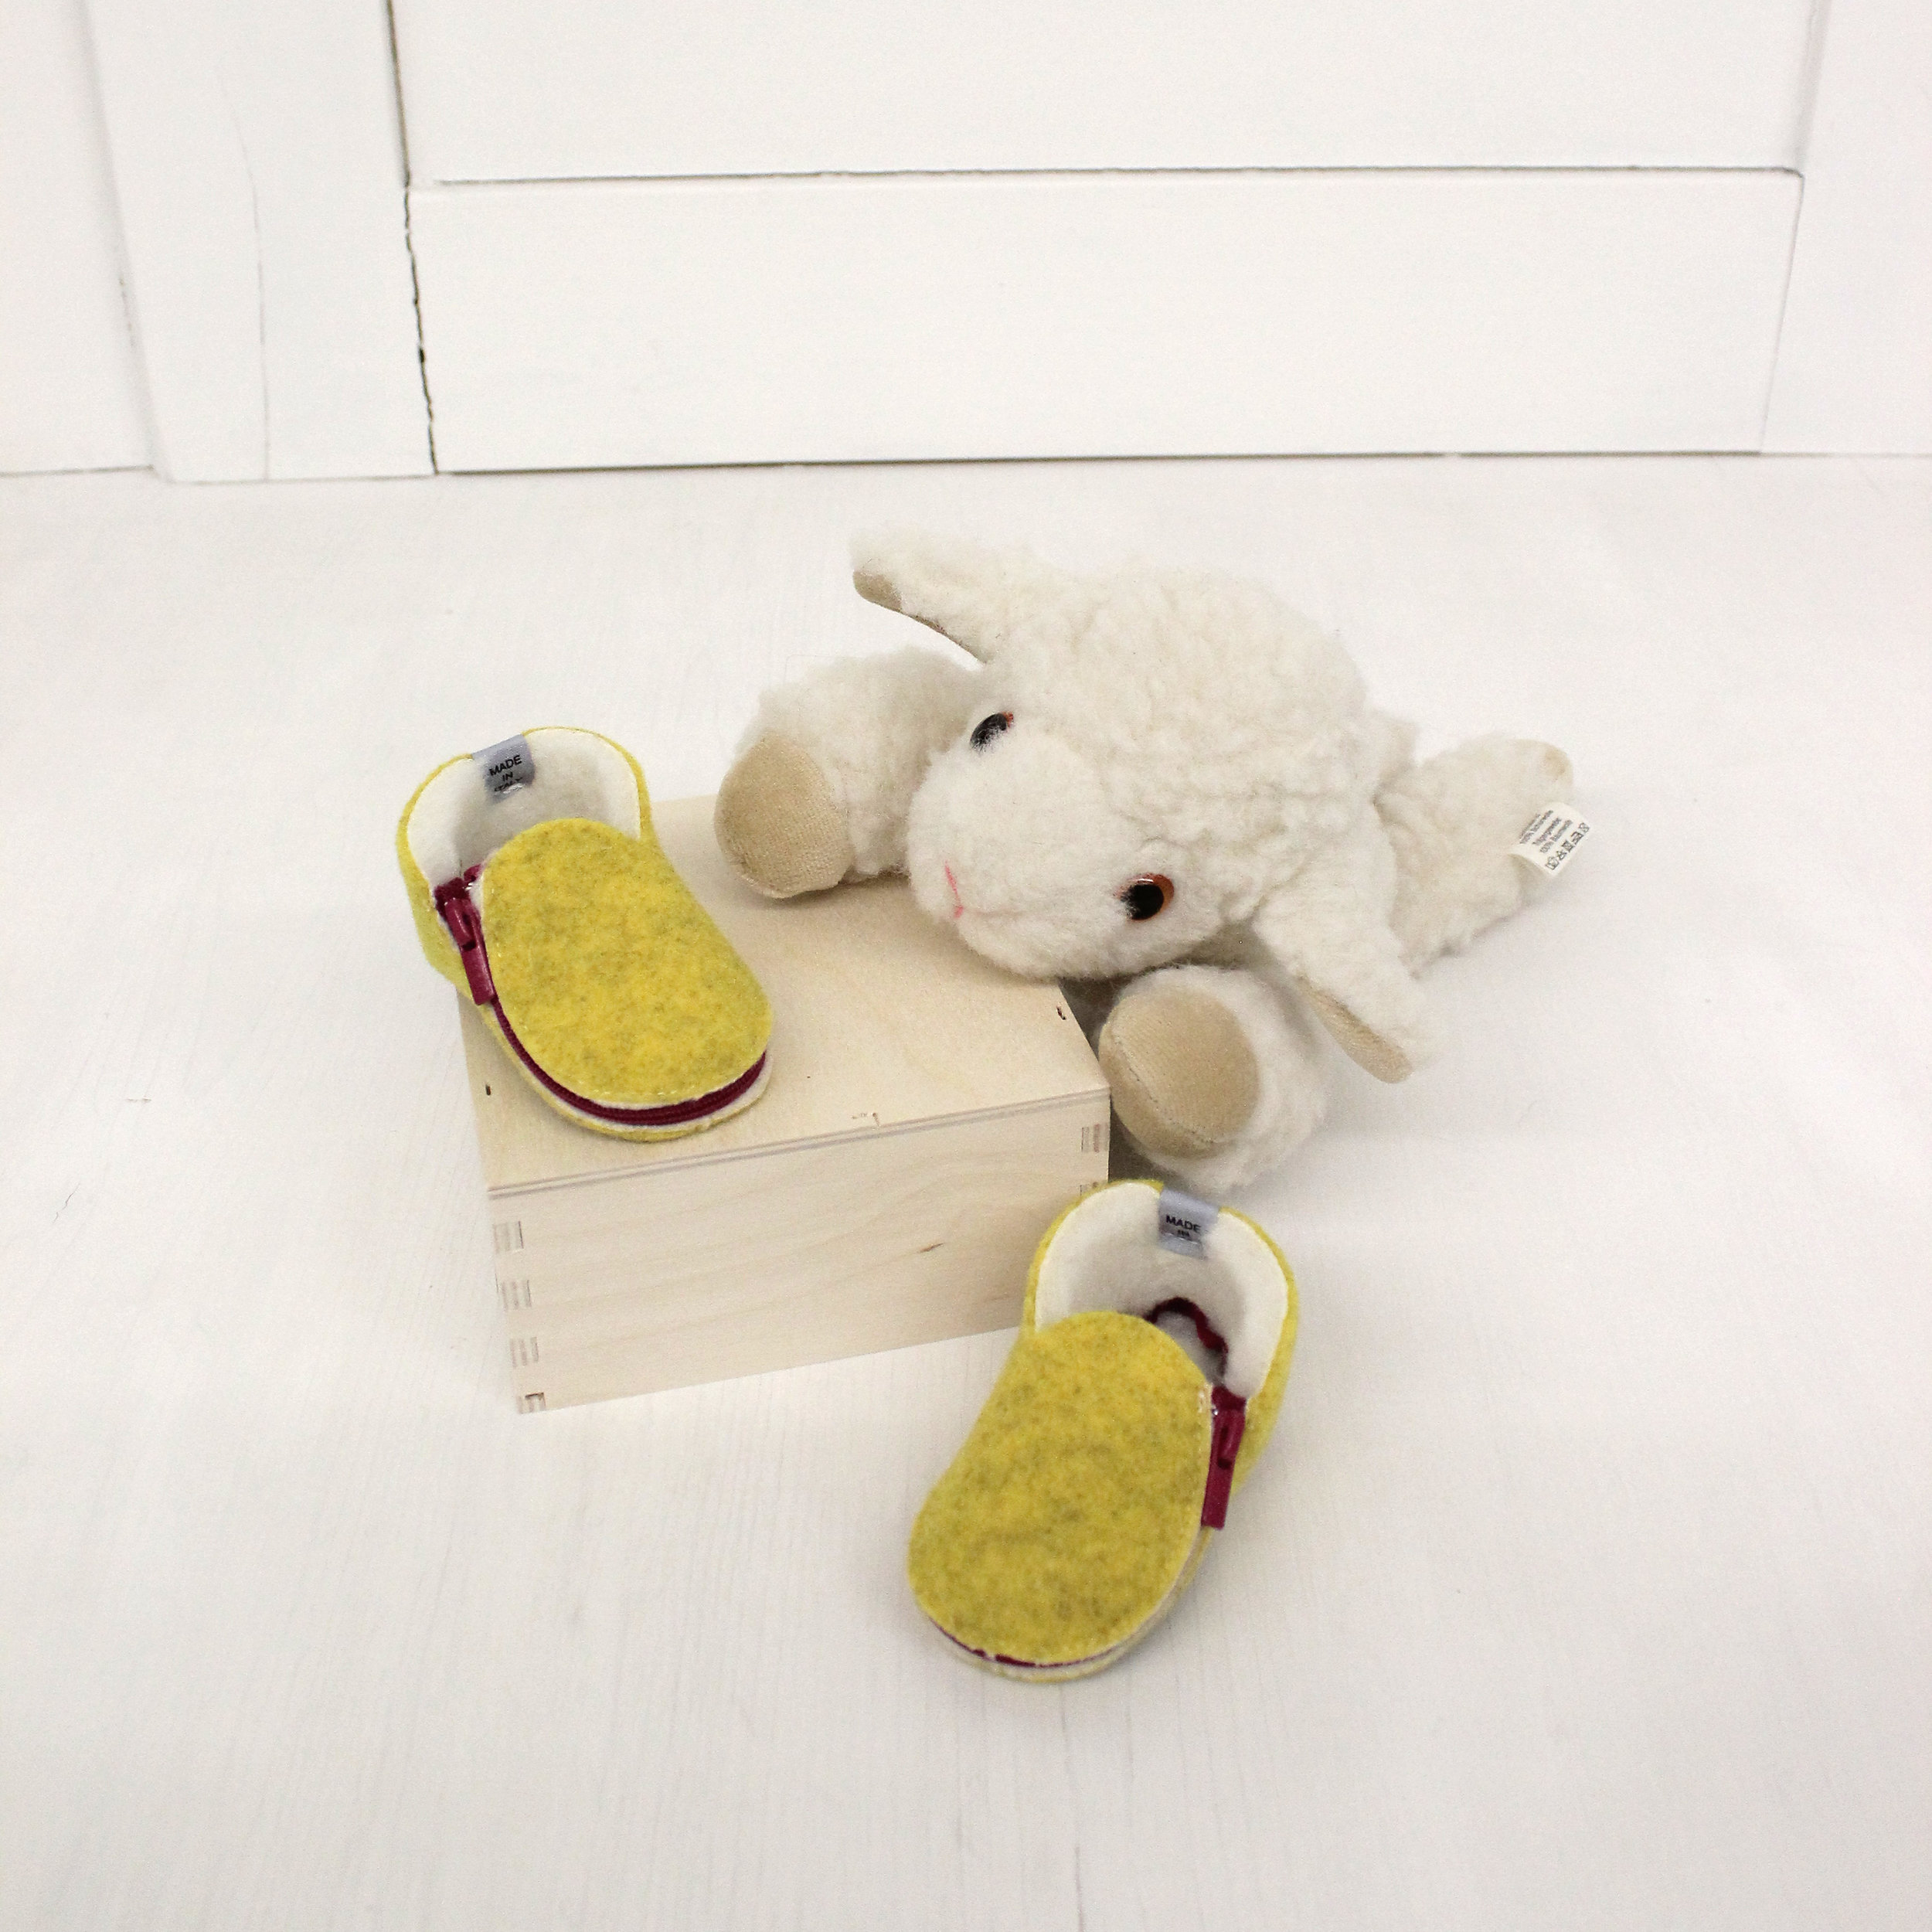 baby+shoes+felt+wool+ship.jpg